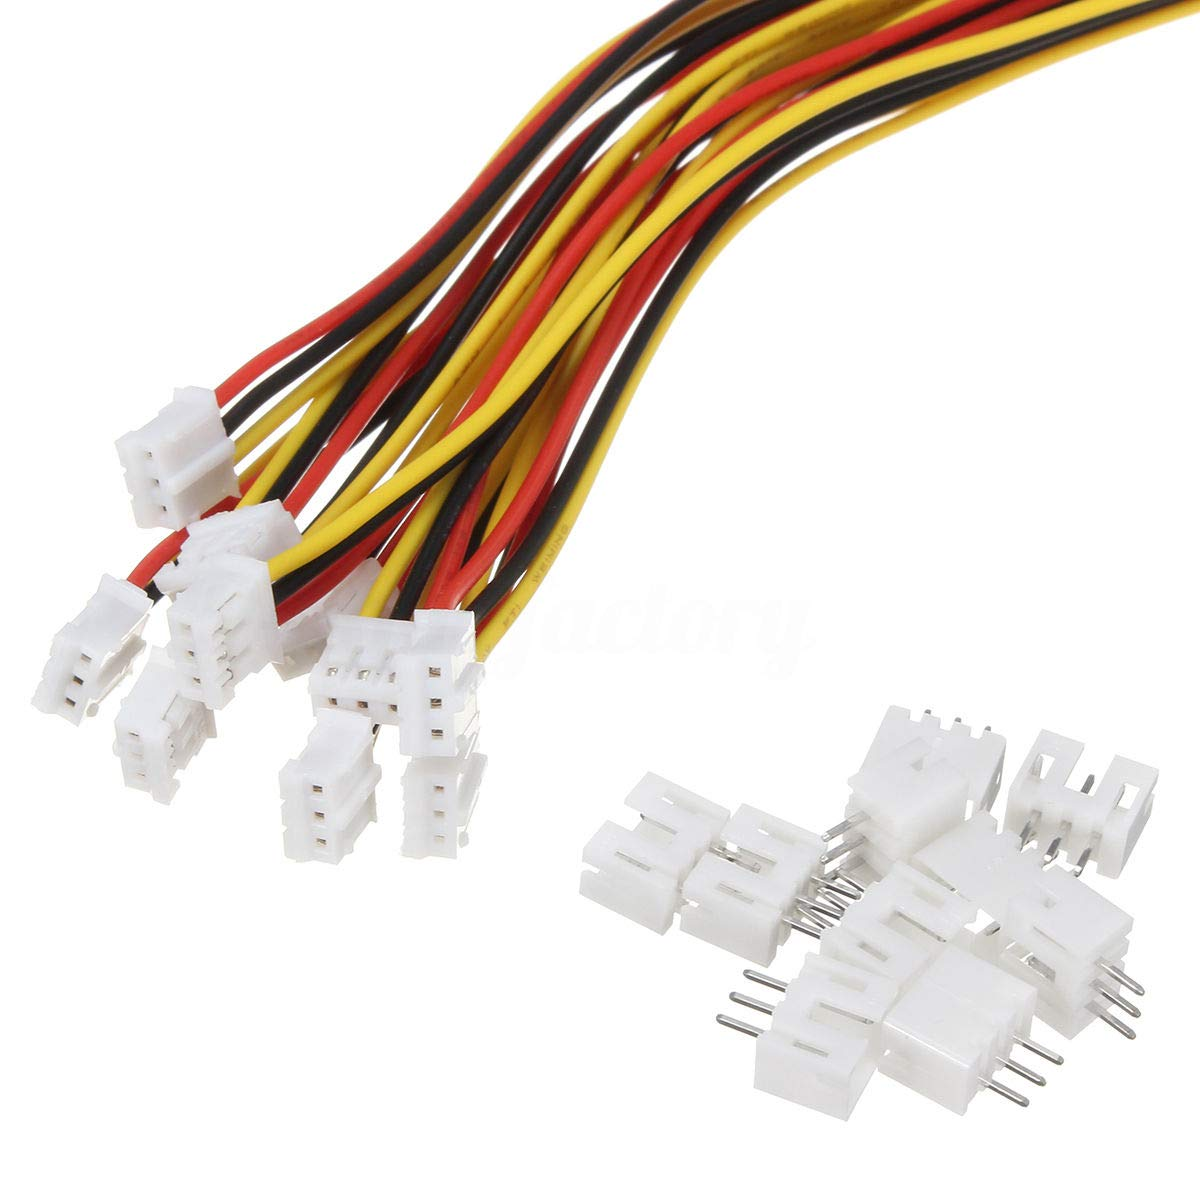 Mini Mirco JST PH 2.0MM 3Pin Male Female Connector Plug Wires Cables 10 Sets